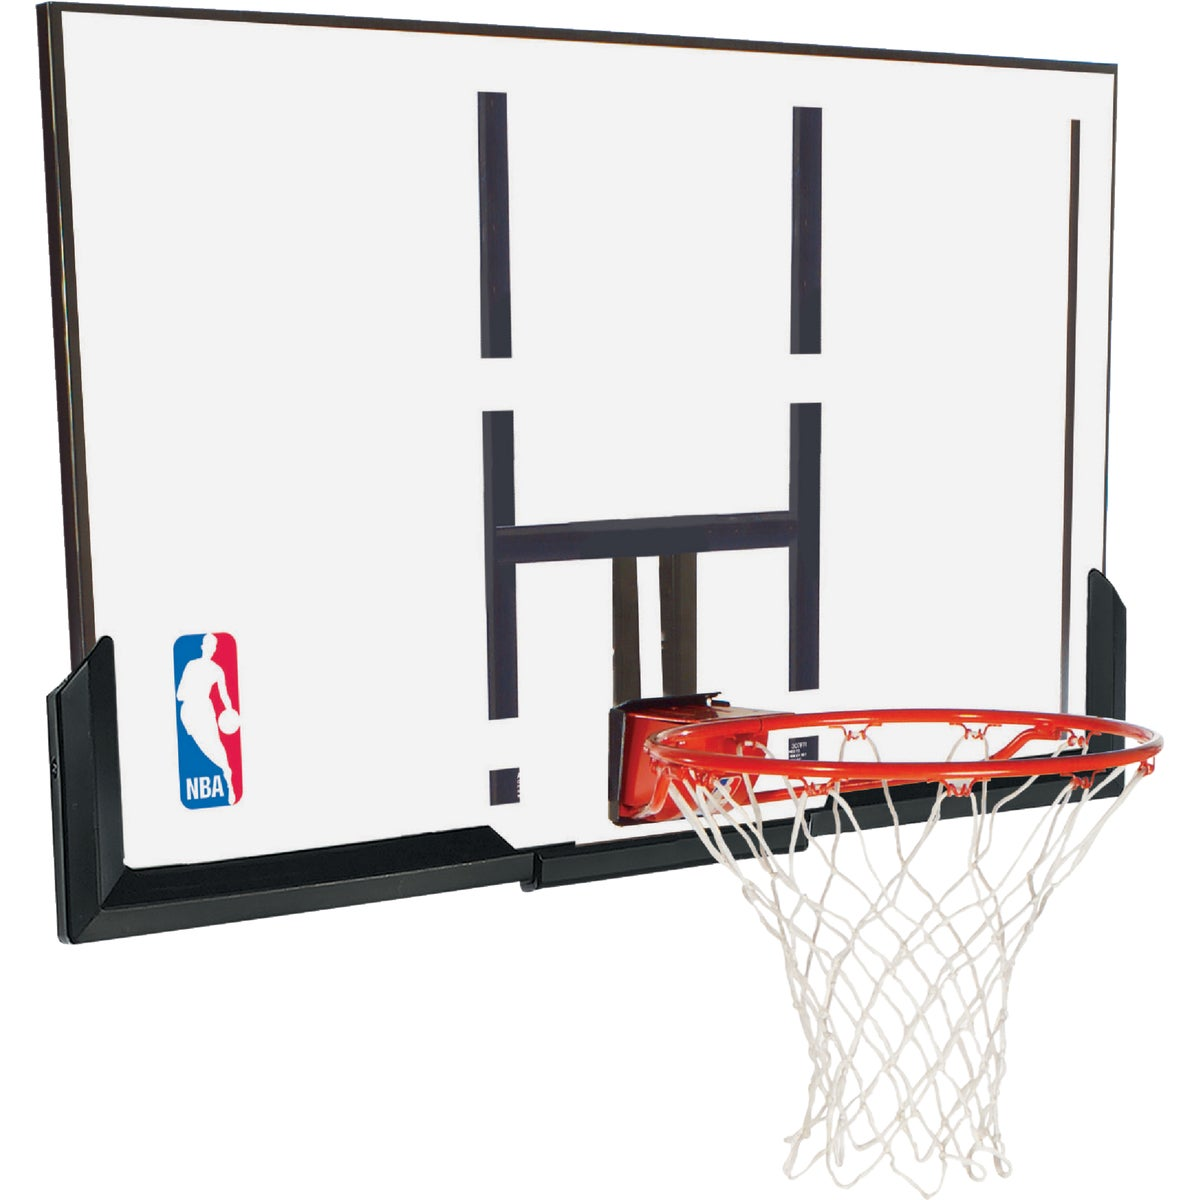 "52"" ACRYLC BACKBOARD/RIM - 79307 by Huffy Sports"